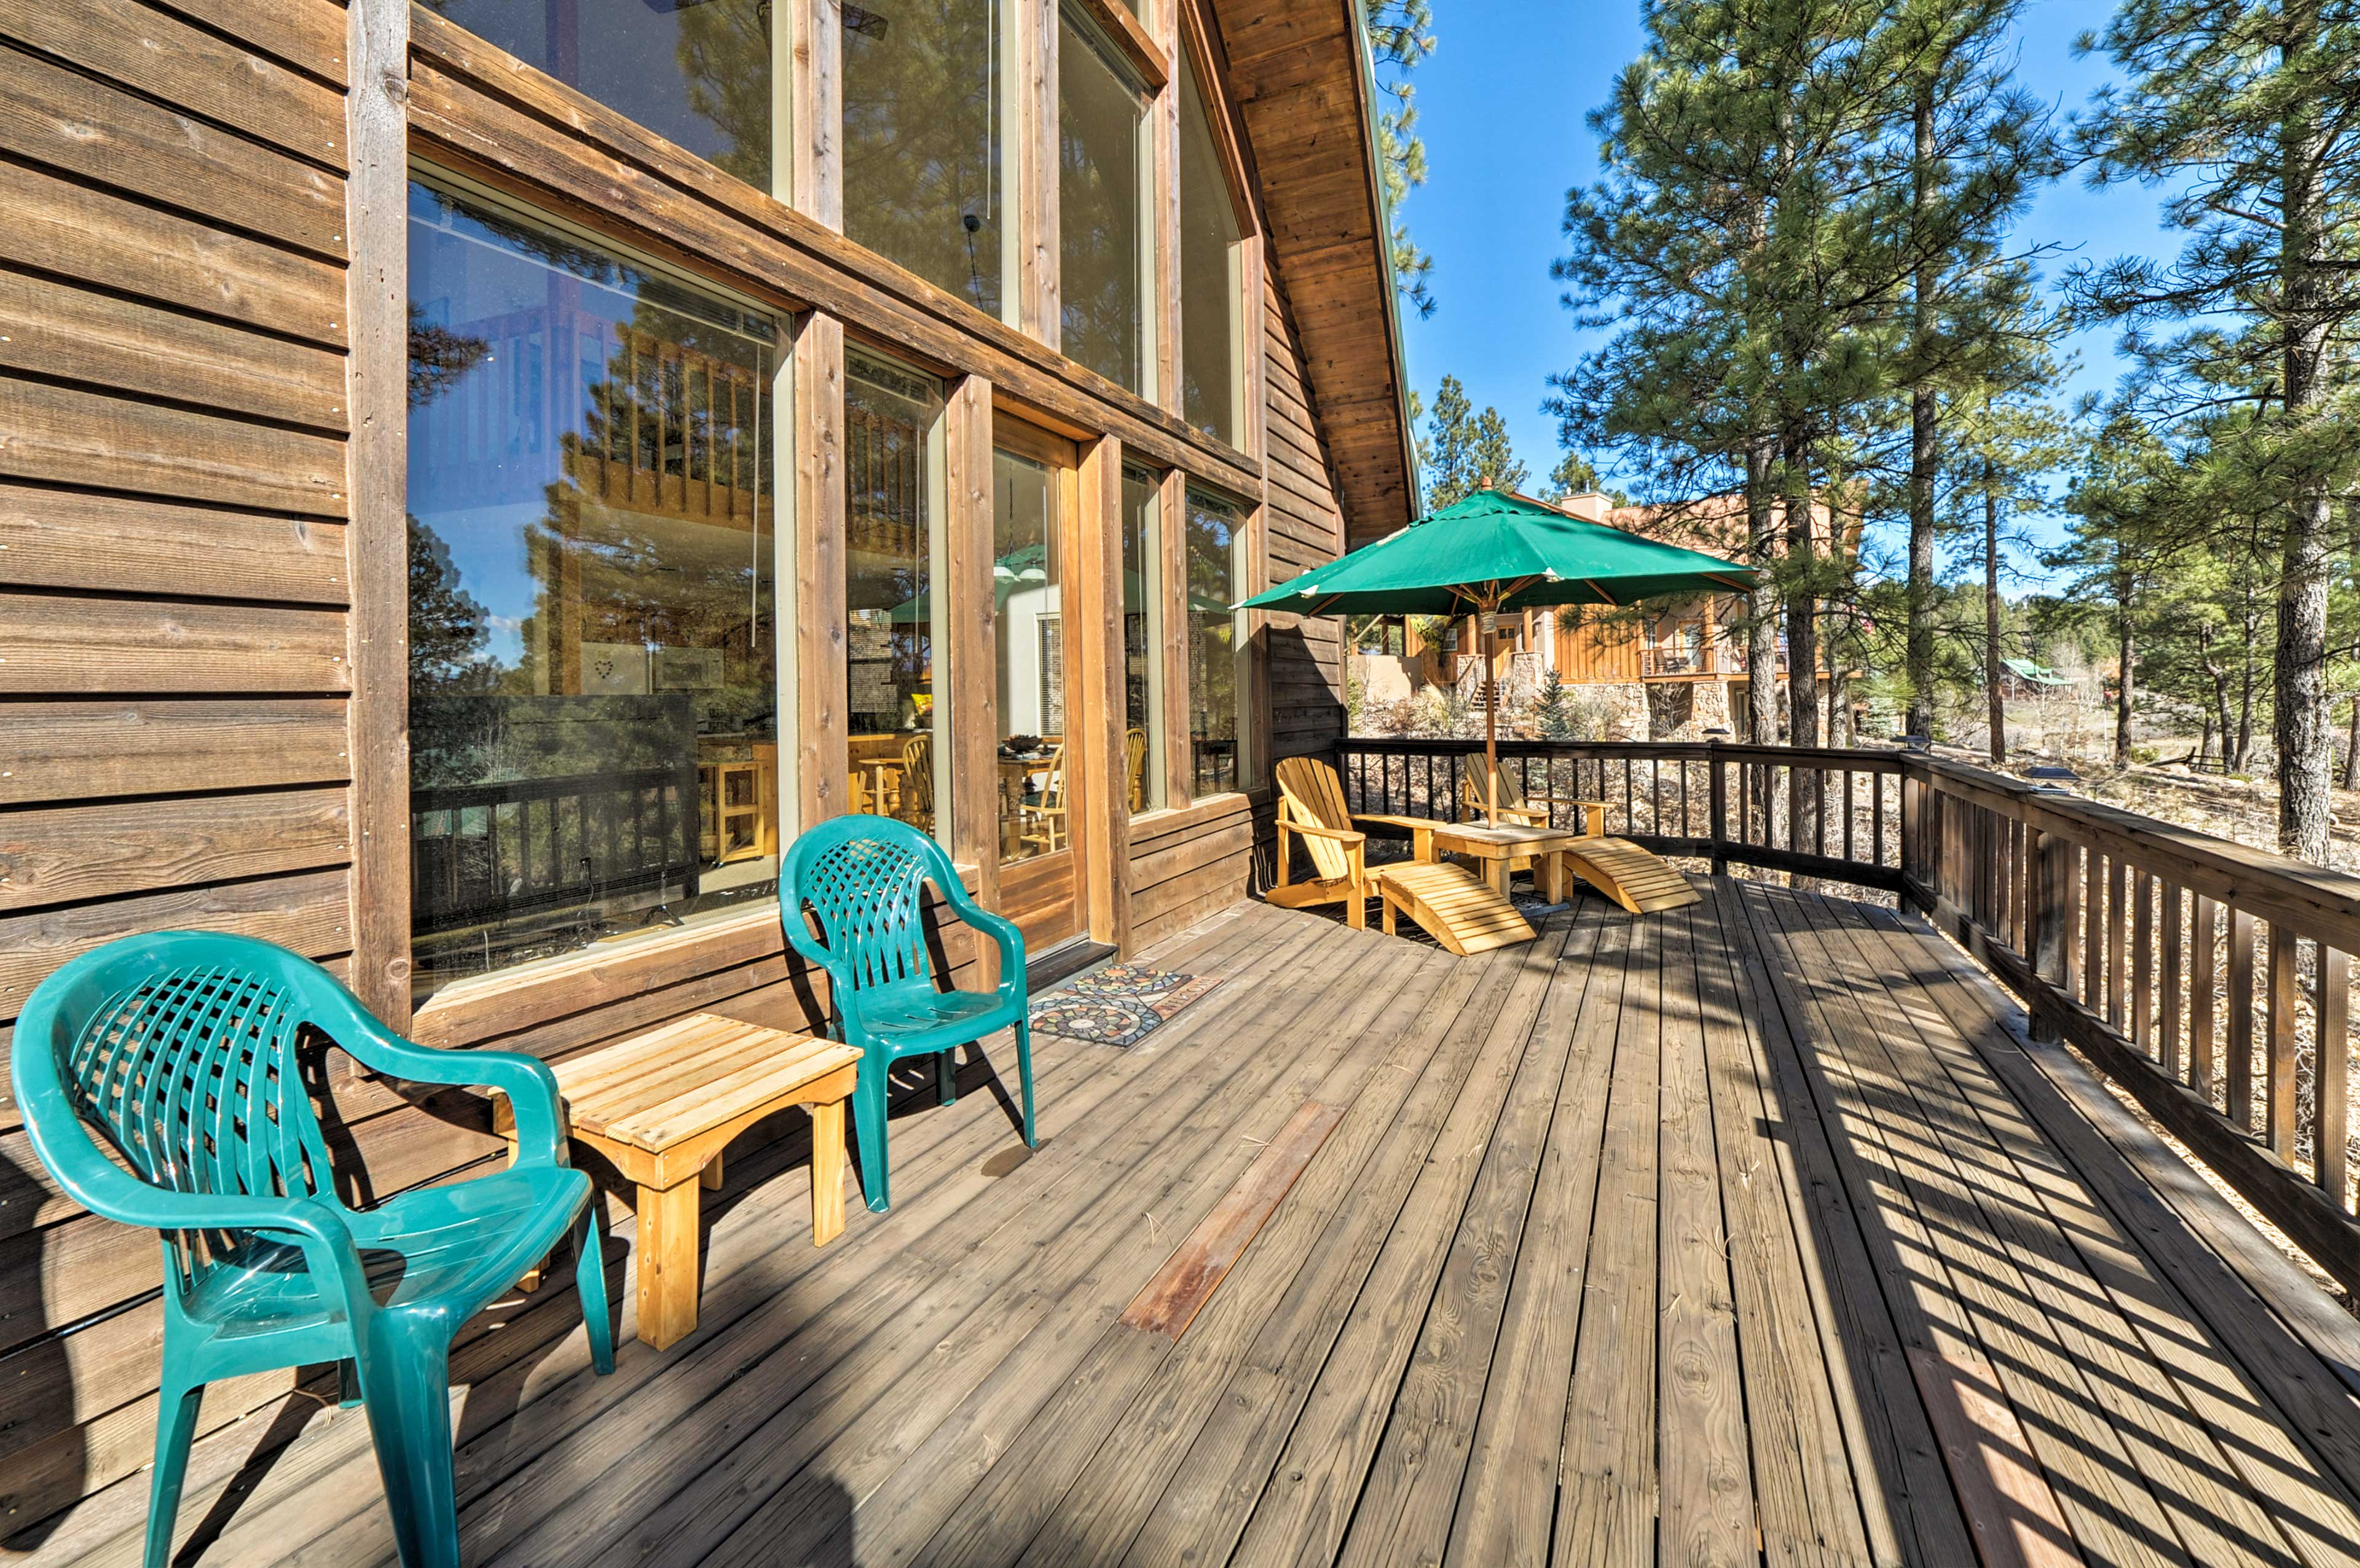 The front deck is perfect for getting some vitamin D!